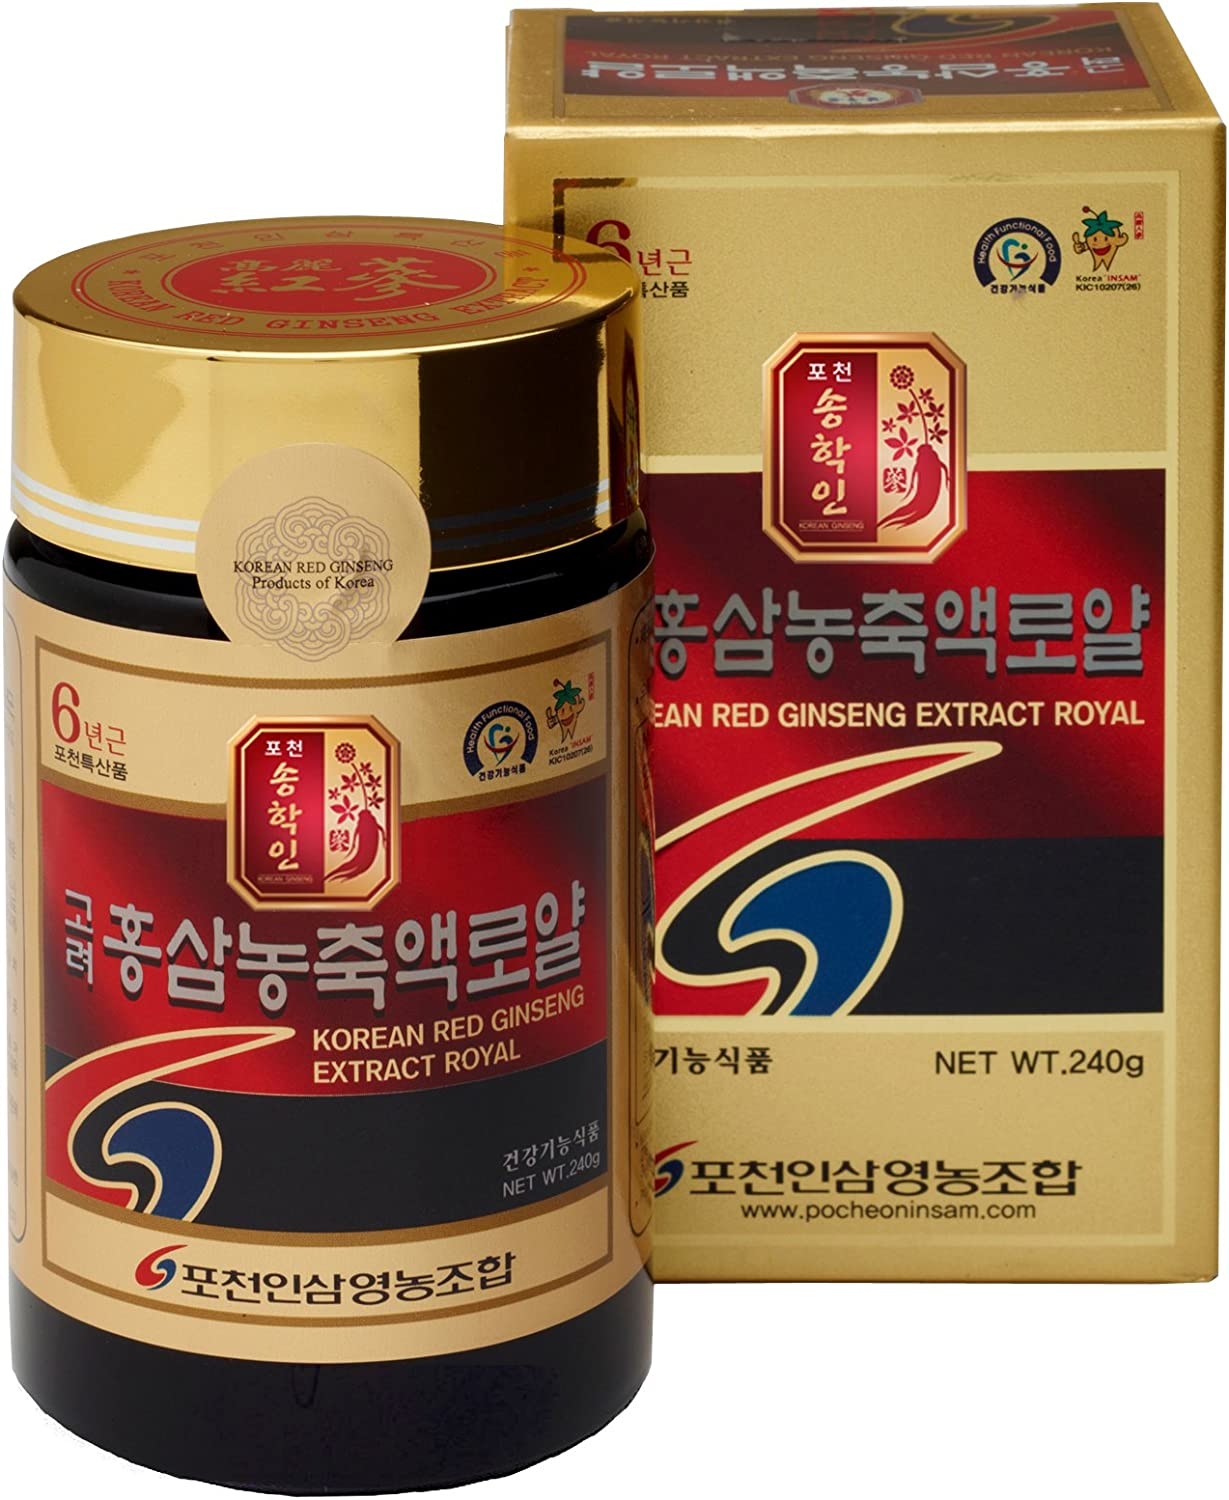 Pocheon 240g 8.5oz , 100 Pure Korean 6Years Root Panax Red Ginseng Extract Royal, 70 Solid State, Saponin